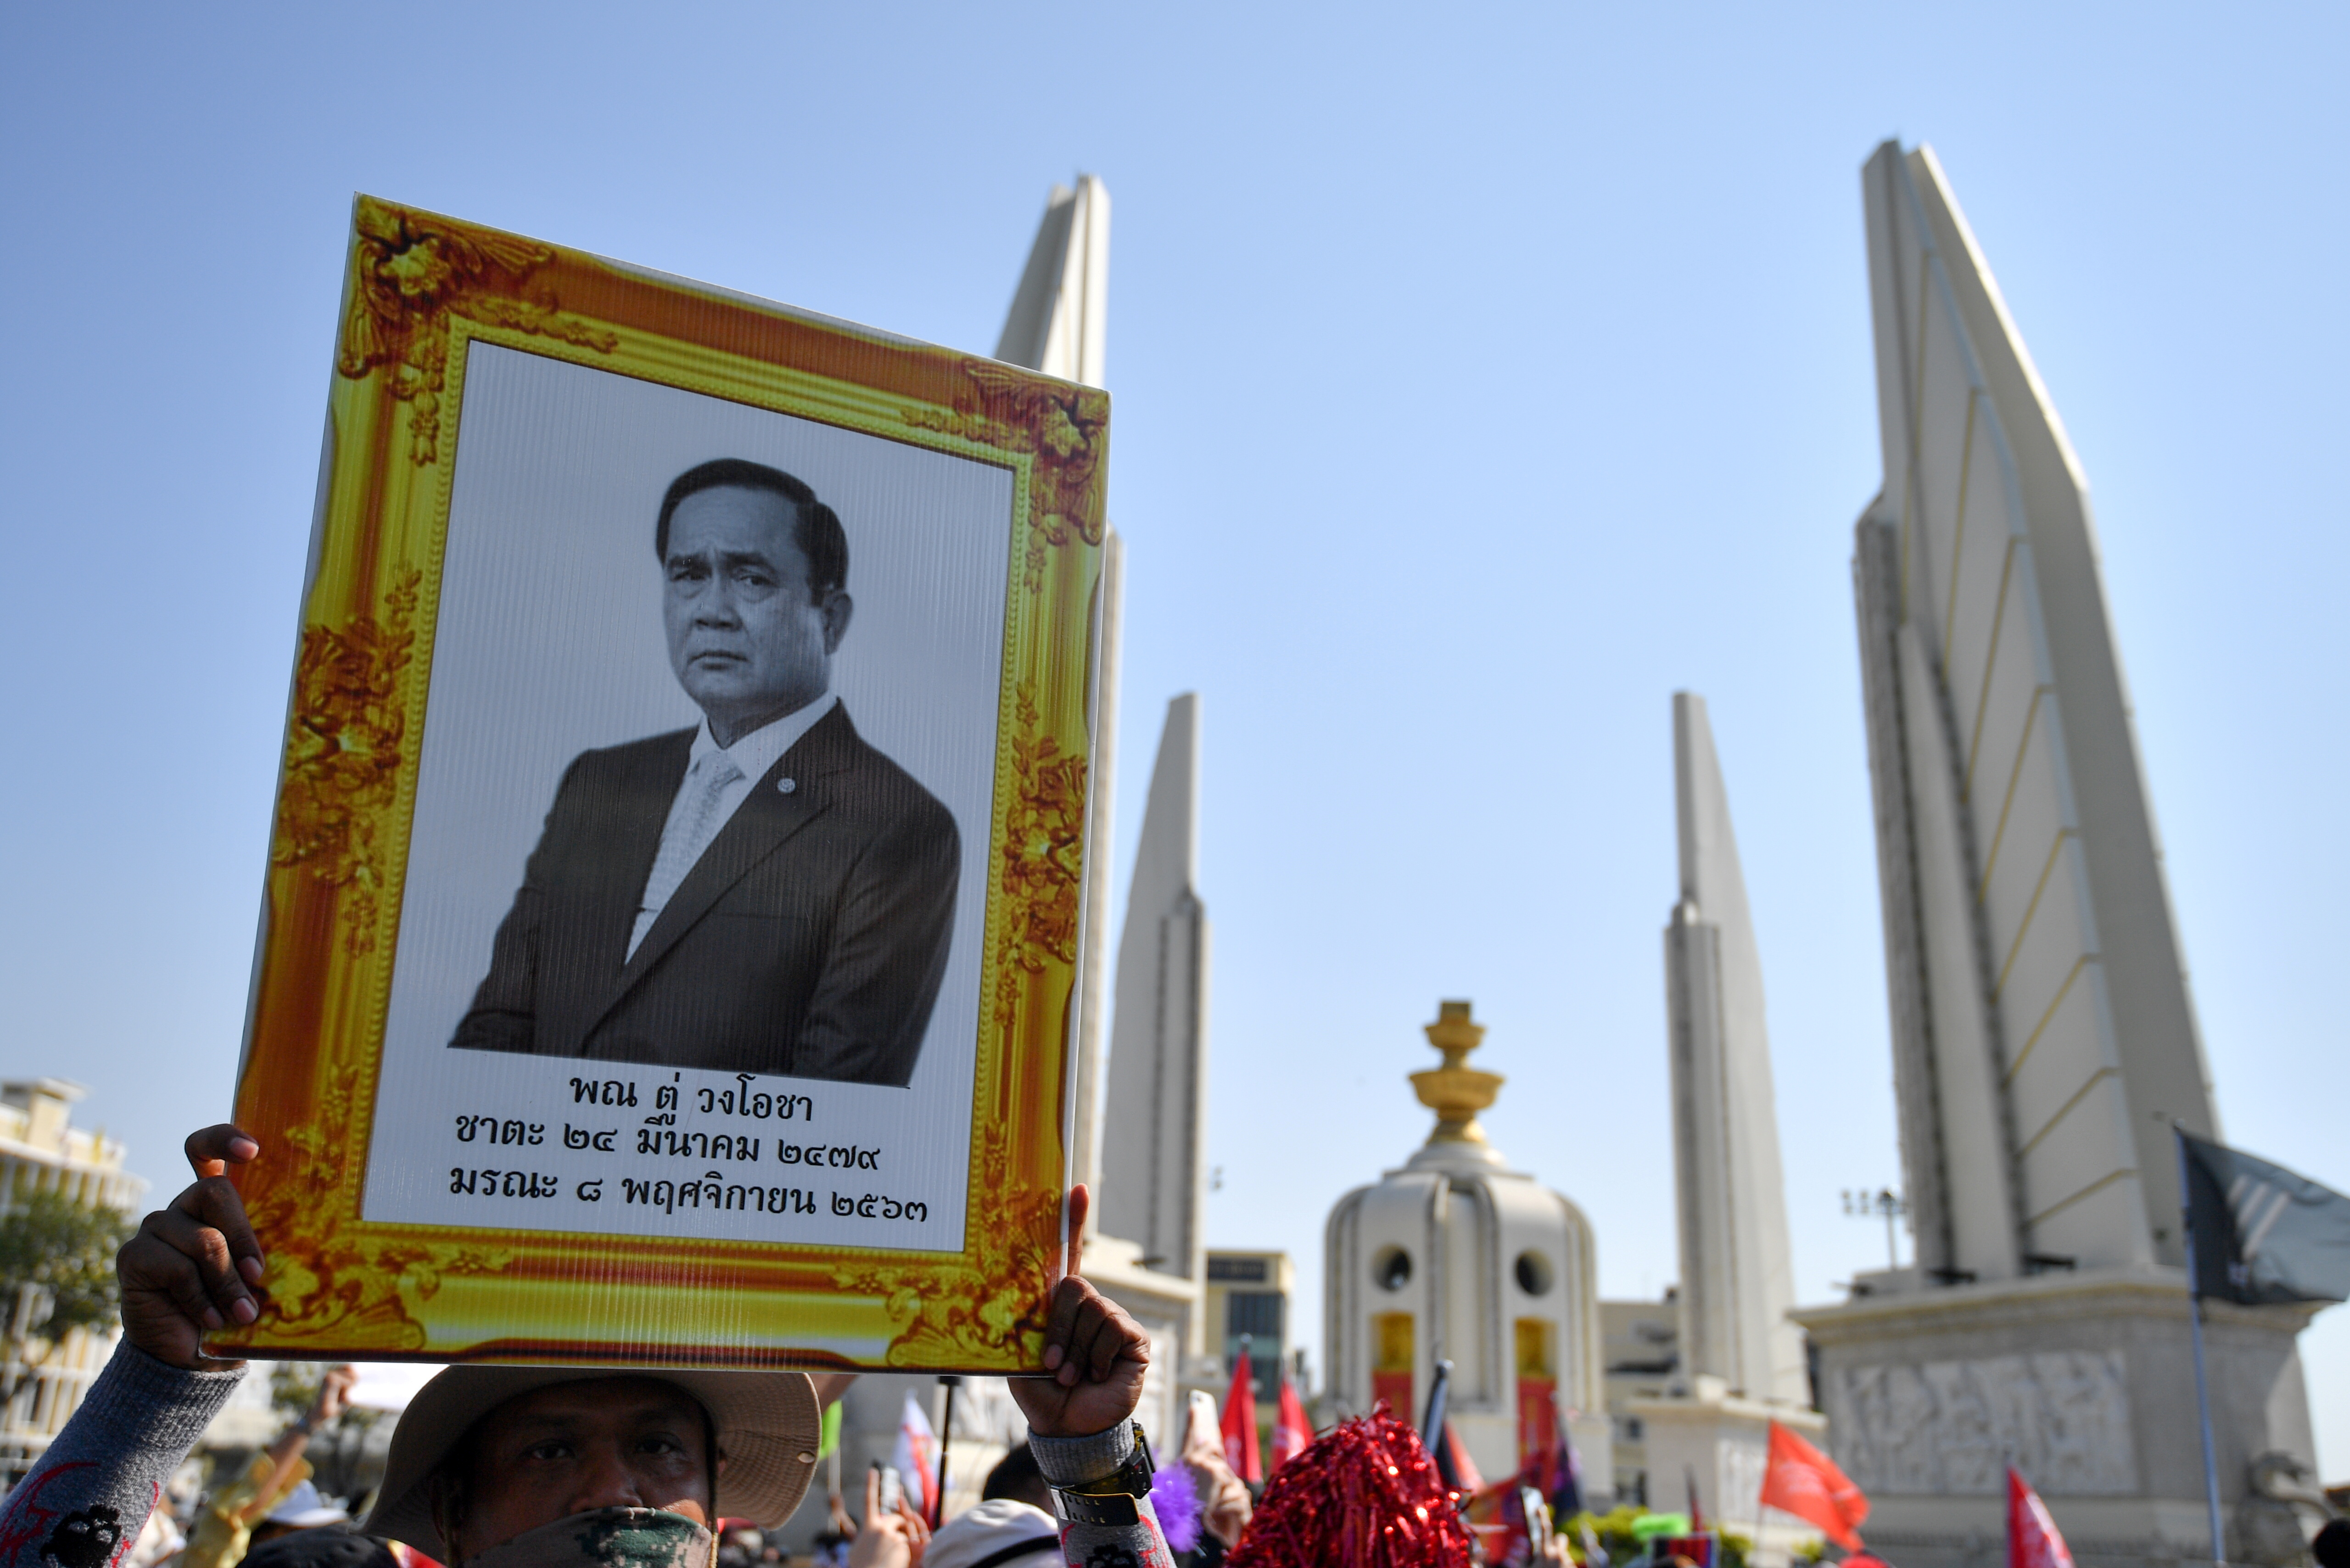 A pro-democracy demonstrator holds a portrait of Thai Prime Minister Prayuth Chan-ocha, at at gathering at Democracy Monument to demand the release of four protestors who were charged under a lese majeste law, in Bangkok, Thailand, March 7, 2021. REUTERS/Chalinee Thirasupa/File Photo